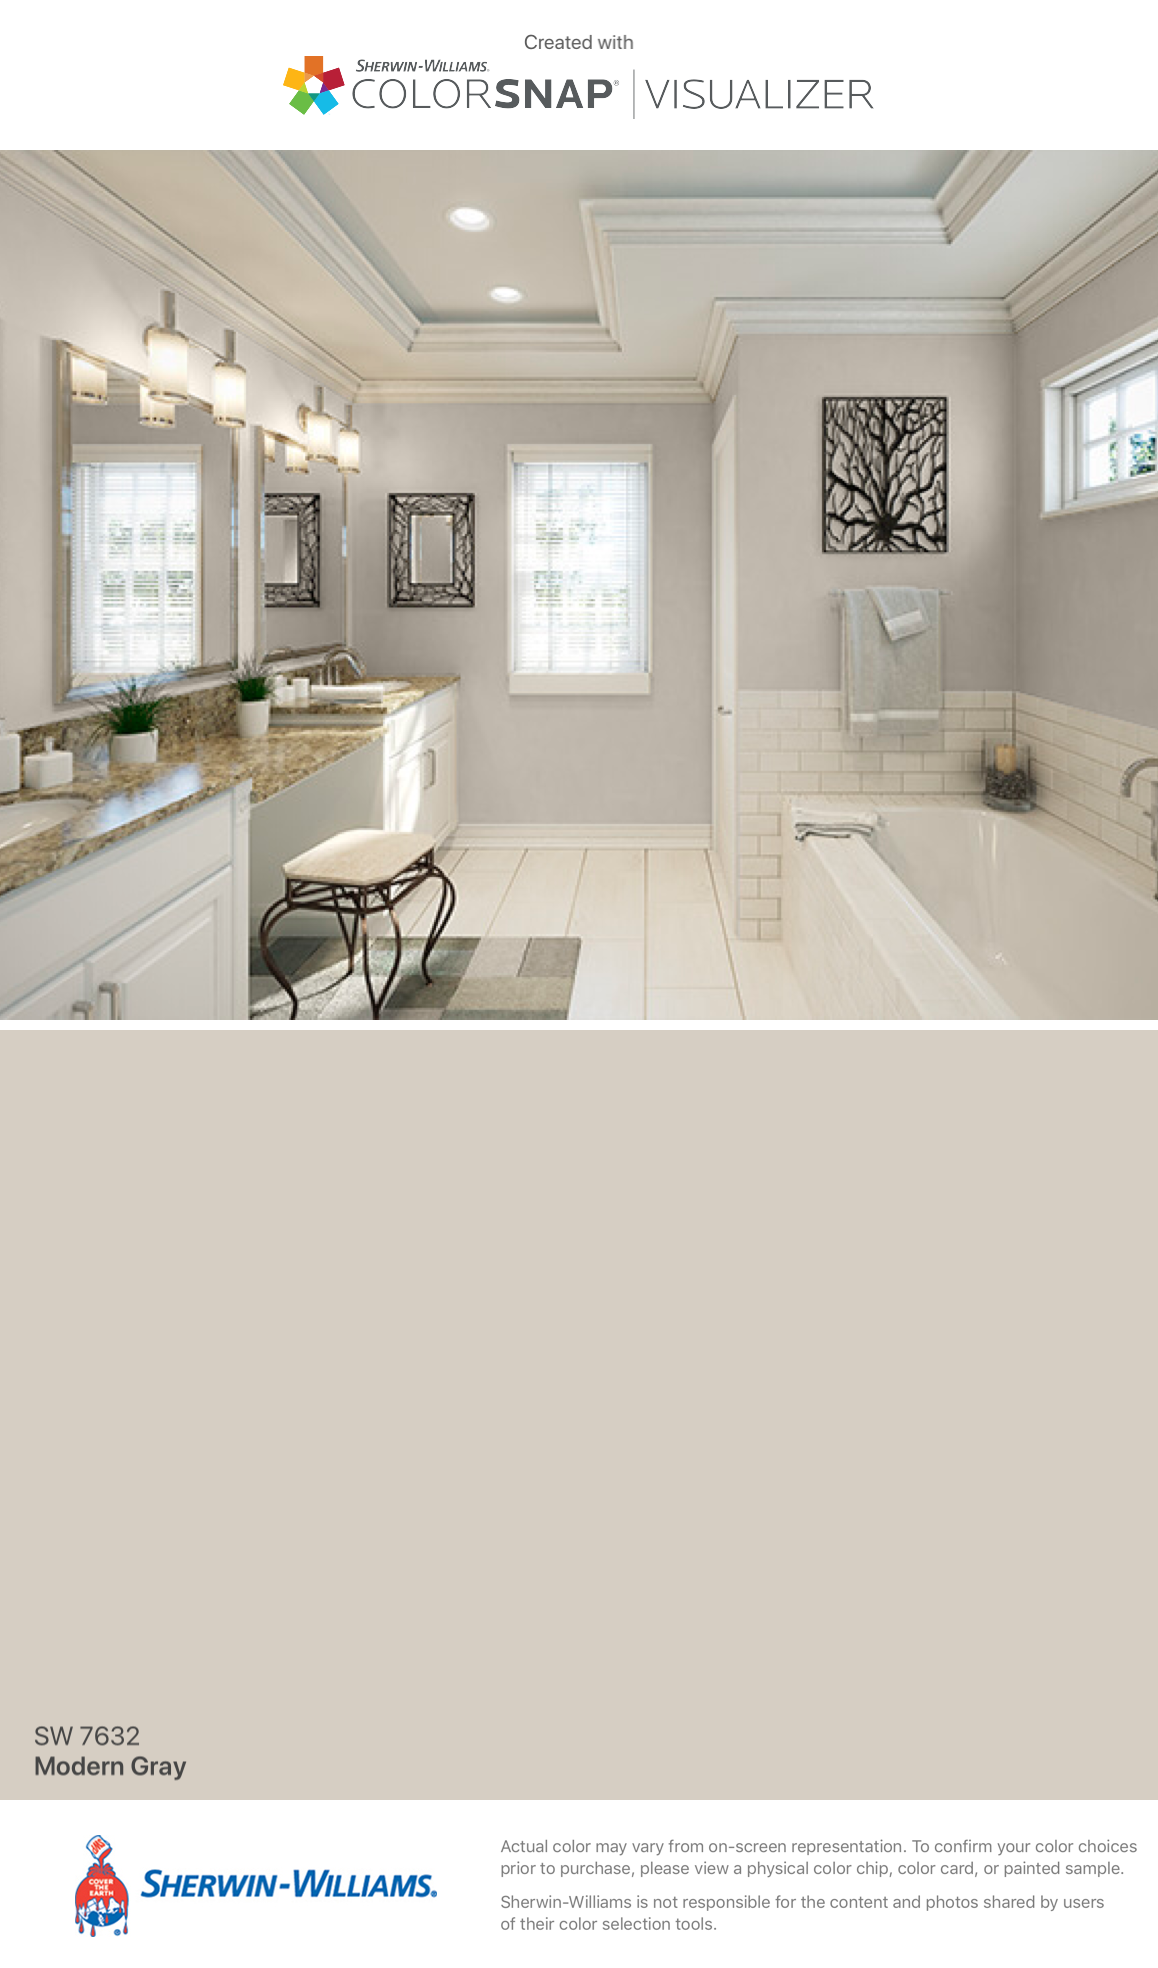 I Found This Color With Colorsnap Visualizer For Iphone By Sherwin Williams Modern Gray Sw 7632